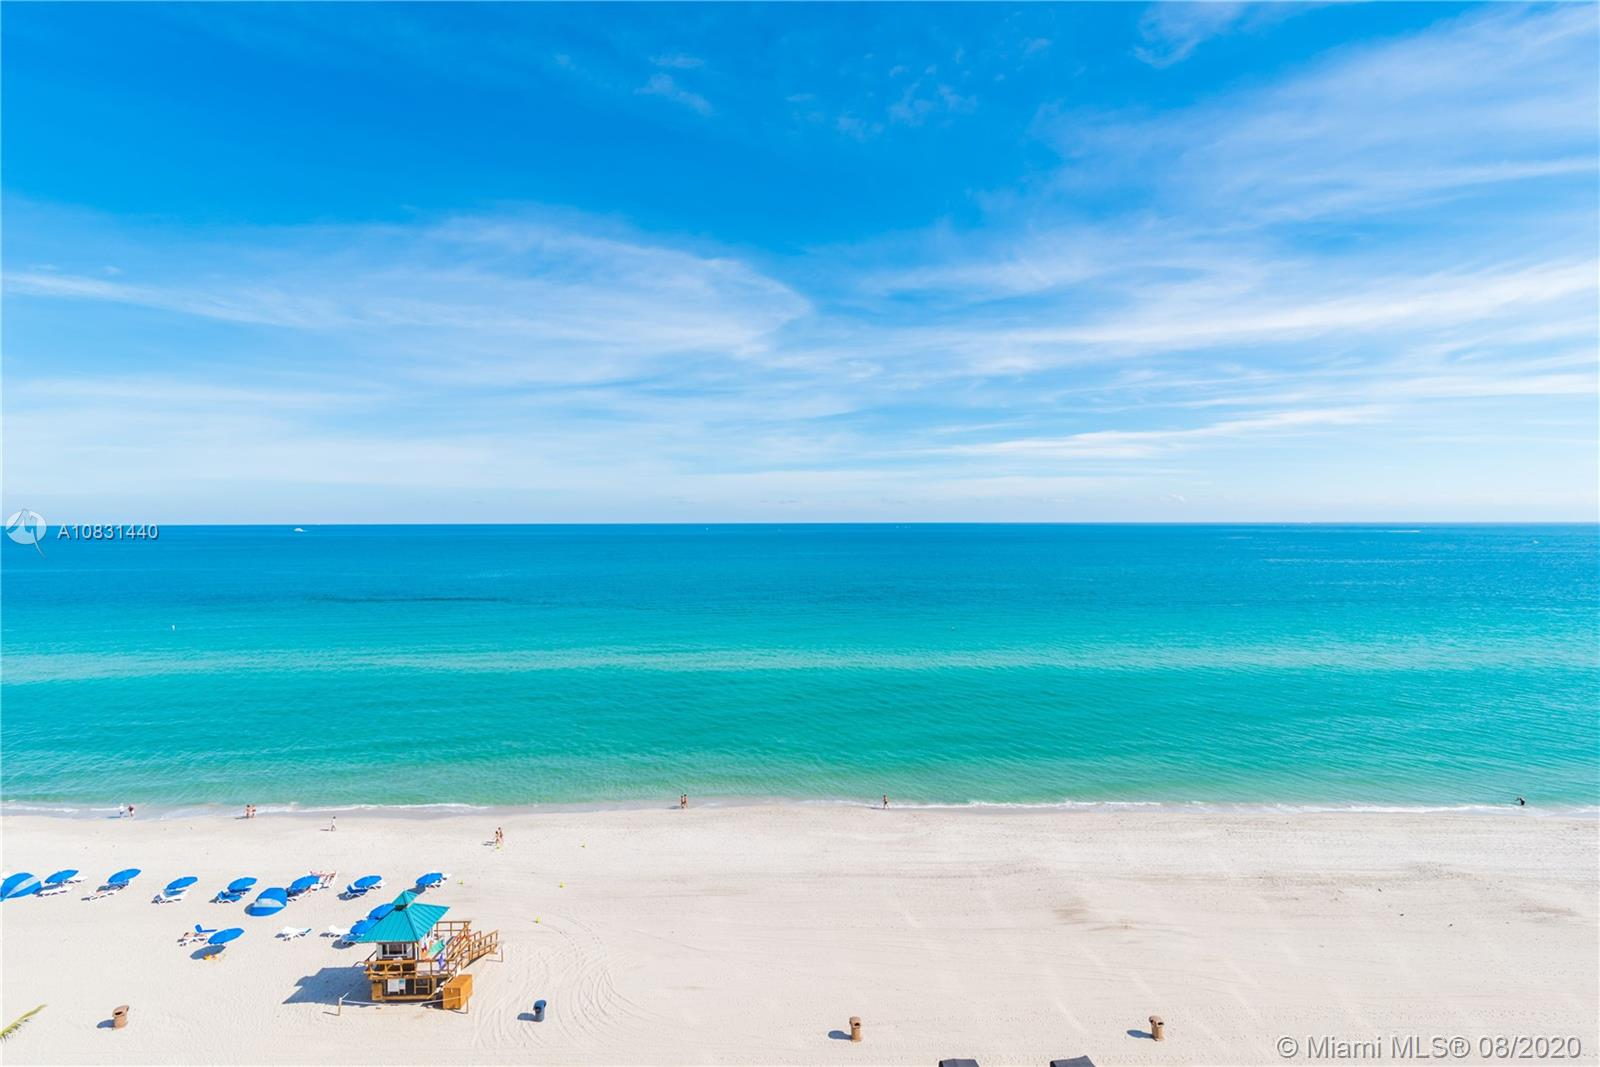 WAKE UP IN PARADISE, FLOOR TO CEILING ENDLESS OCEAN VIEWS FROM EVERY ROOM. LIVE IN THE ULTIMATE LUXURY BOUTIQUE HIGHRISE  4774 SQ FT TOTAL INCLUDES 1000 SQ FT OUTDOOR SPACE WRAP AROUND BALCONIES WITH  BUILT -IN SUMMER KITCHEN, 2 CAR PRIVATE GARAGE STEPS FROM YOUR MANSION IN THE SKY,  PANORAMIC VIEWS OF THE OCEAN & GORGEOUS INTRA-COASTAL VIEWS AT NIGHT FROM  THIS STUNNING 34TH FLOOR AT THE PORSCHE TOWER  AWAITS YOU, SPACIOUS OPEN FLOOR PLAN 3BED 4 1/2 BATH, SPACIOUS MASTER  MODERN POGENPOL KITCHEN AT ITS FINEST IN EVERY DETAIL, CUSTOM BUILT IN CLOSETS, NATURAL LIGHTING IN THE ENTIRE RESIDENCE.  THE BEST OF THE BEST LIFESTYLE WITH WORLD-CLASS SERVICES, SPA, OWNERS LOUNGE, 5 STAR RESTAURANT, ROOM SERVICE DAILY, CHILDS PLAY AREA & MORE,  ENJOY LIVING THE ULTIMATE SOUTH FLORIDA LIFESTYLE TODAY.